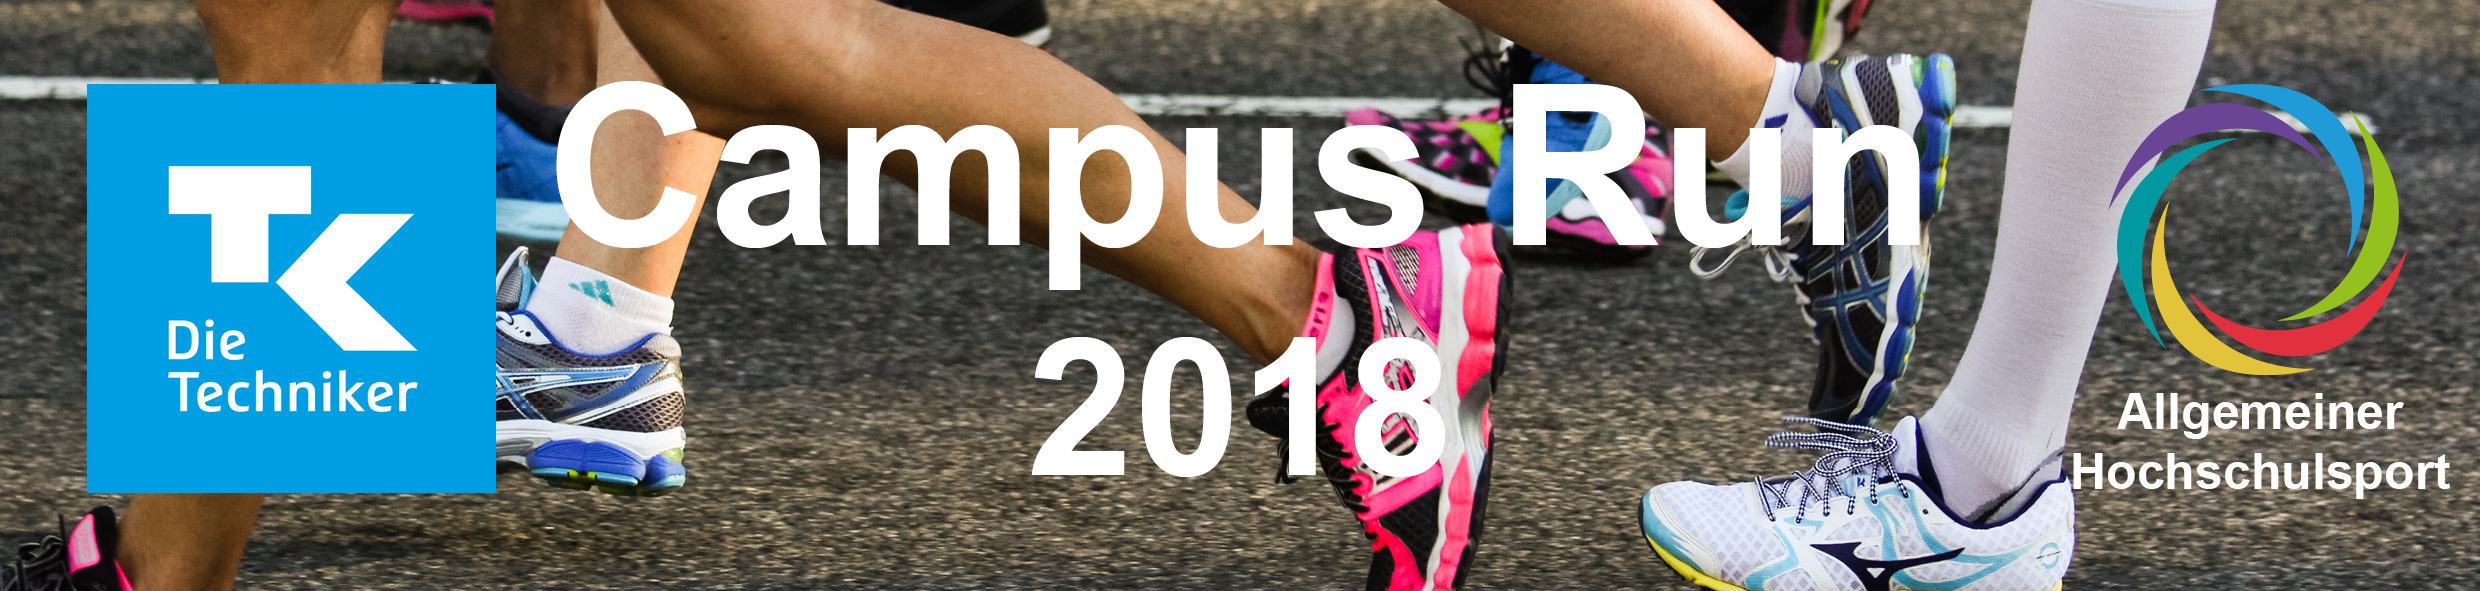 TK Campus Run 2018